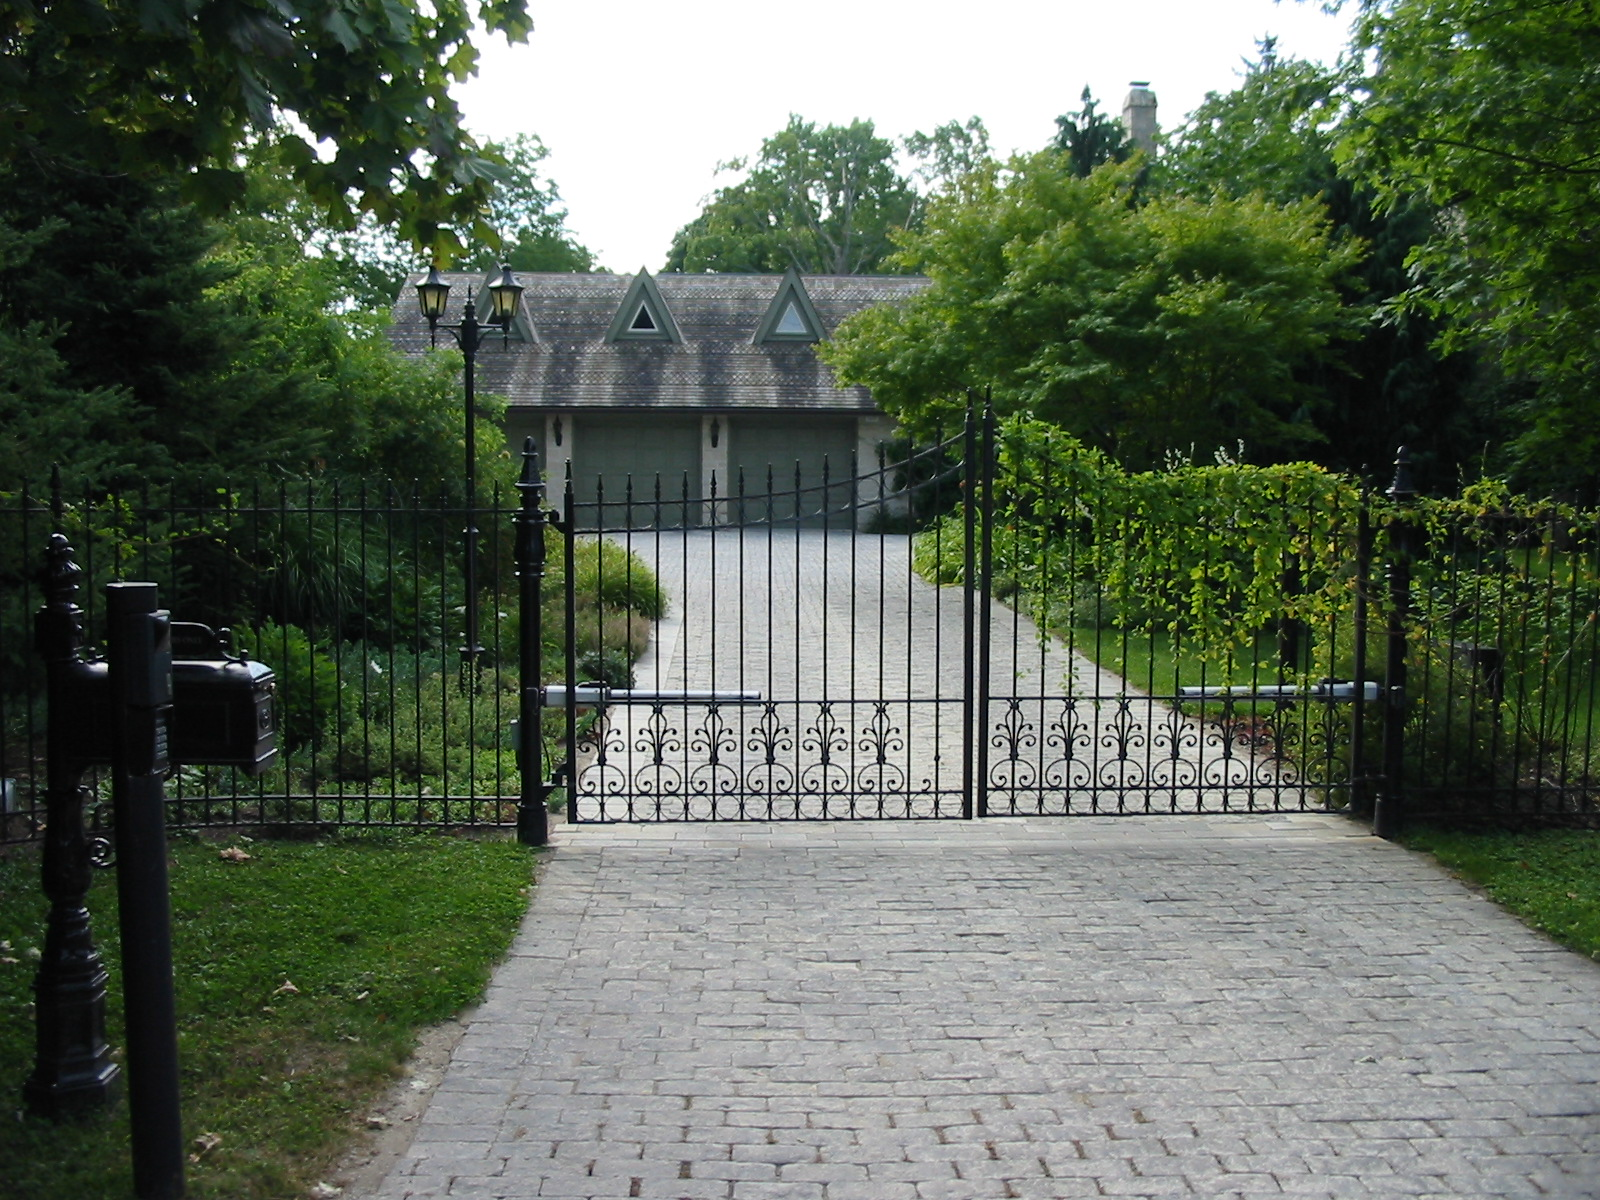 Vehicle entrance with natural stone pavers